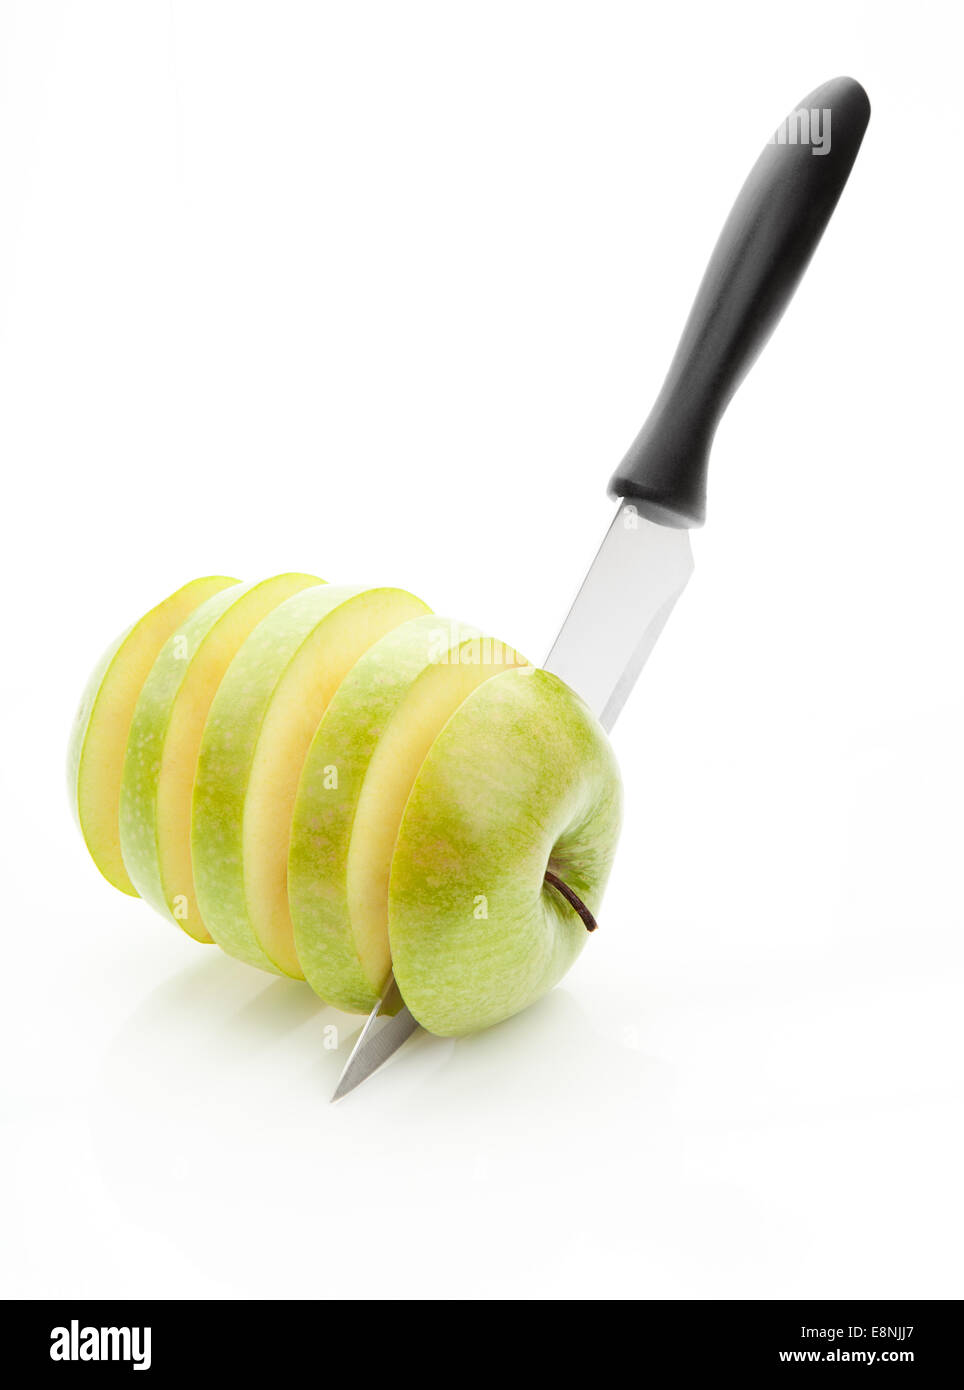 sharp knife, cut into pieces green apple on a white background - Stock Image